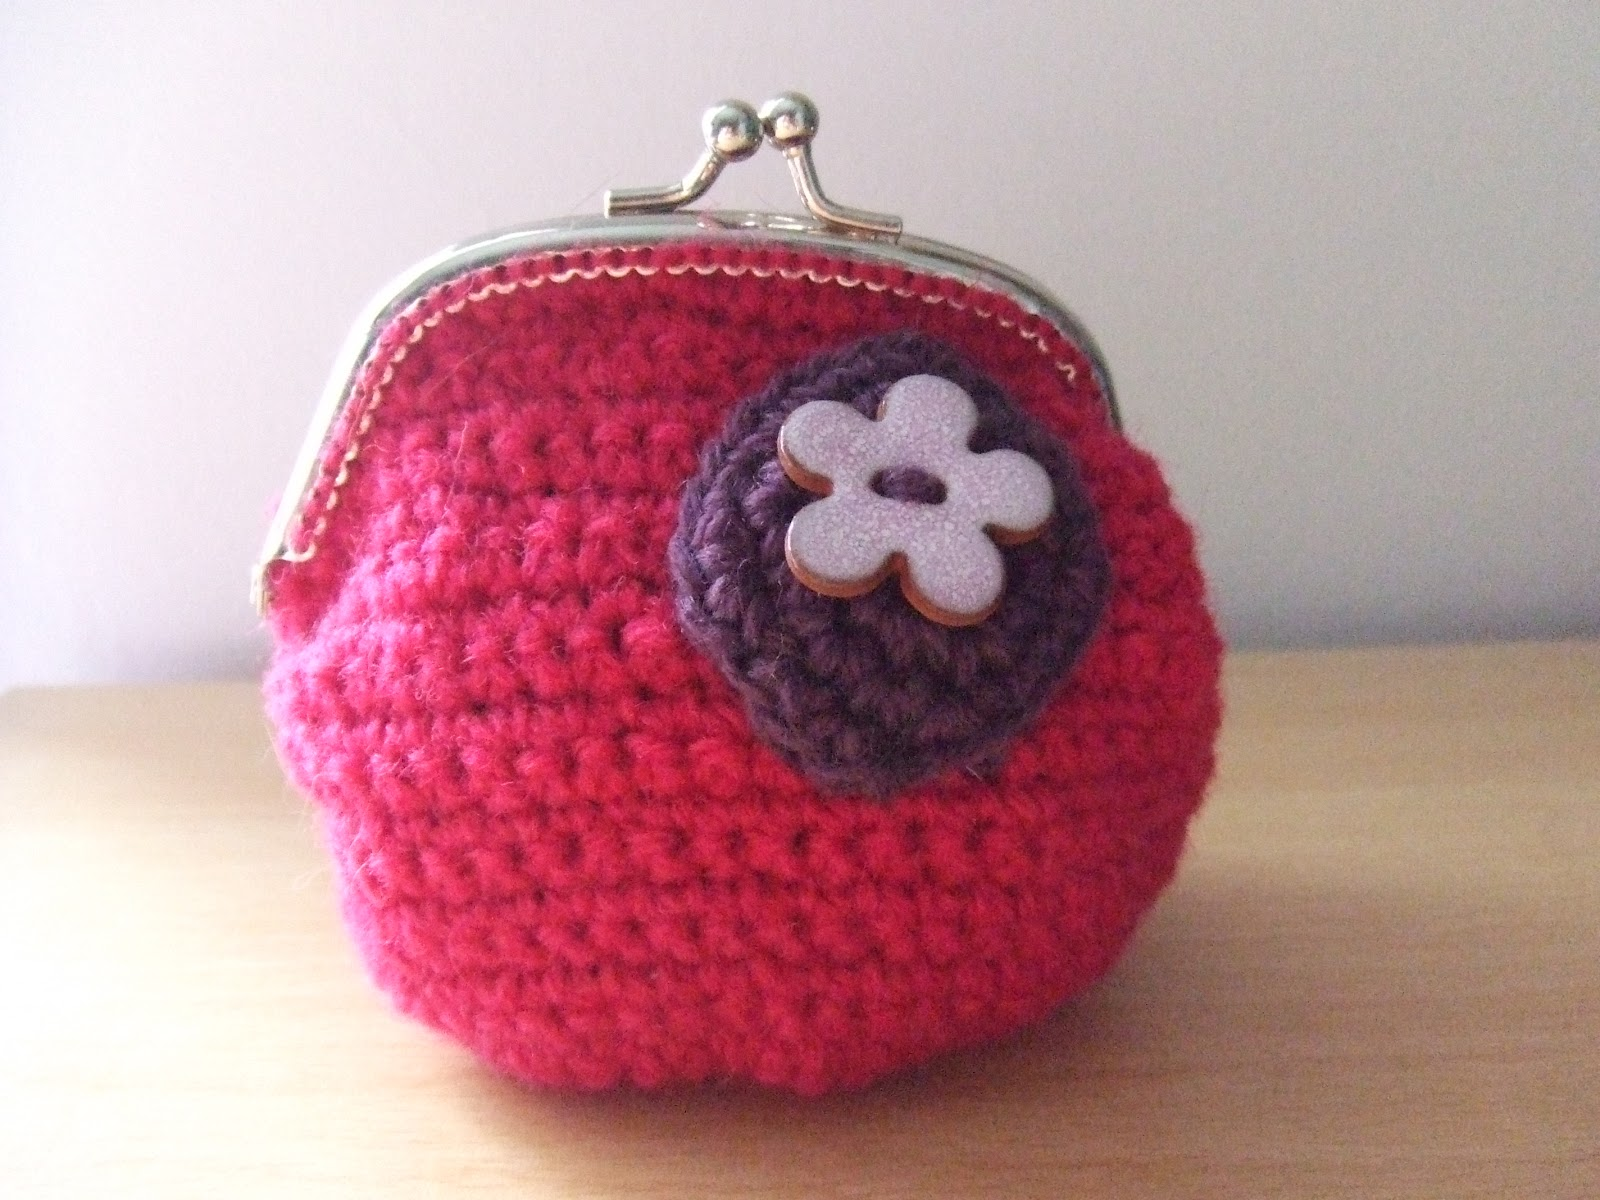 Crafting With Mel: Cotton and Cloud Crochet Purse Kit